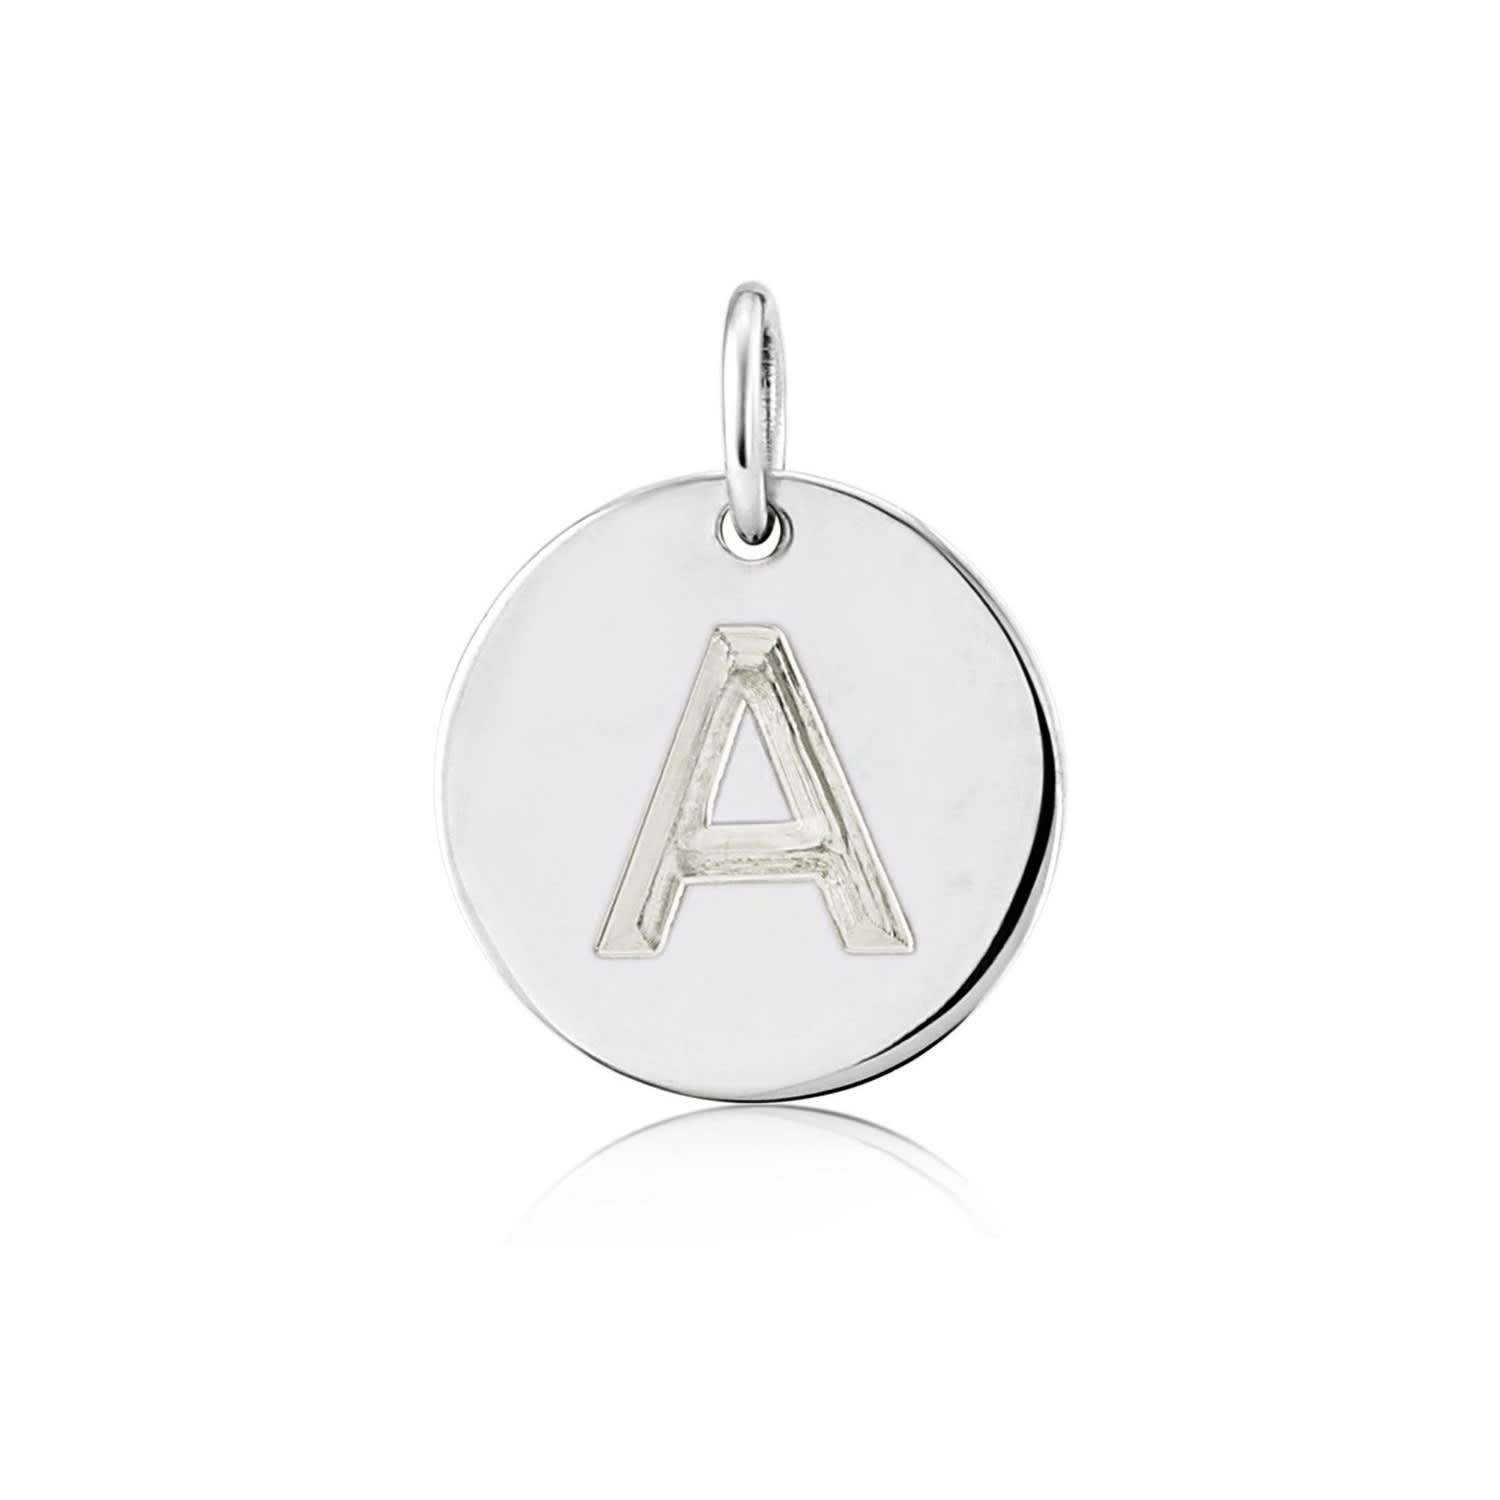 3ce5f08c6f6 Westbourne 9Ct White Gold Initial Disc Pendant | Auree Jewellery ...